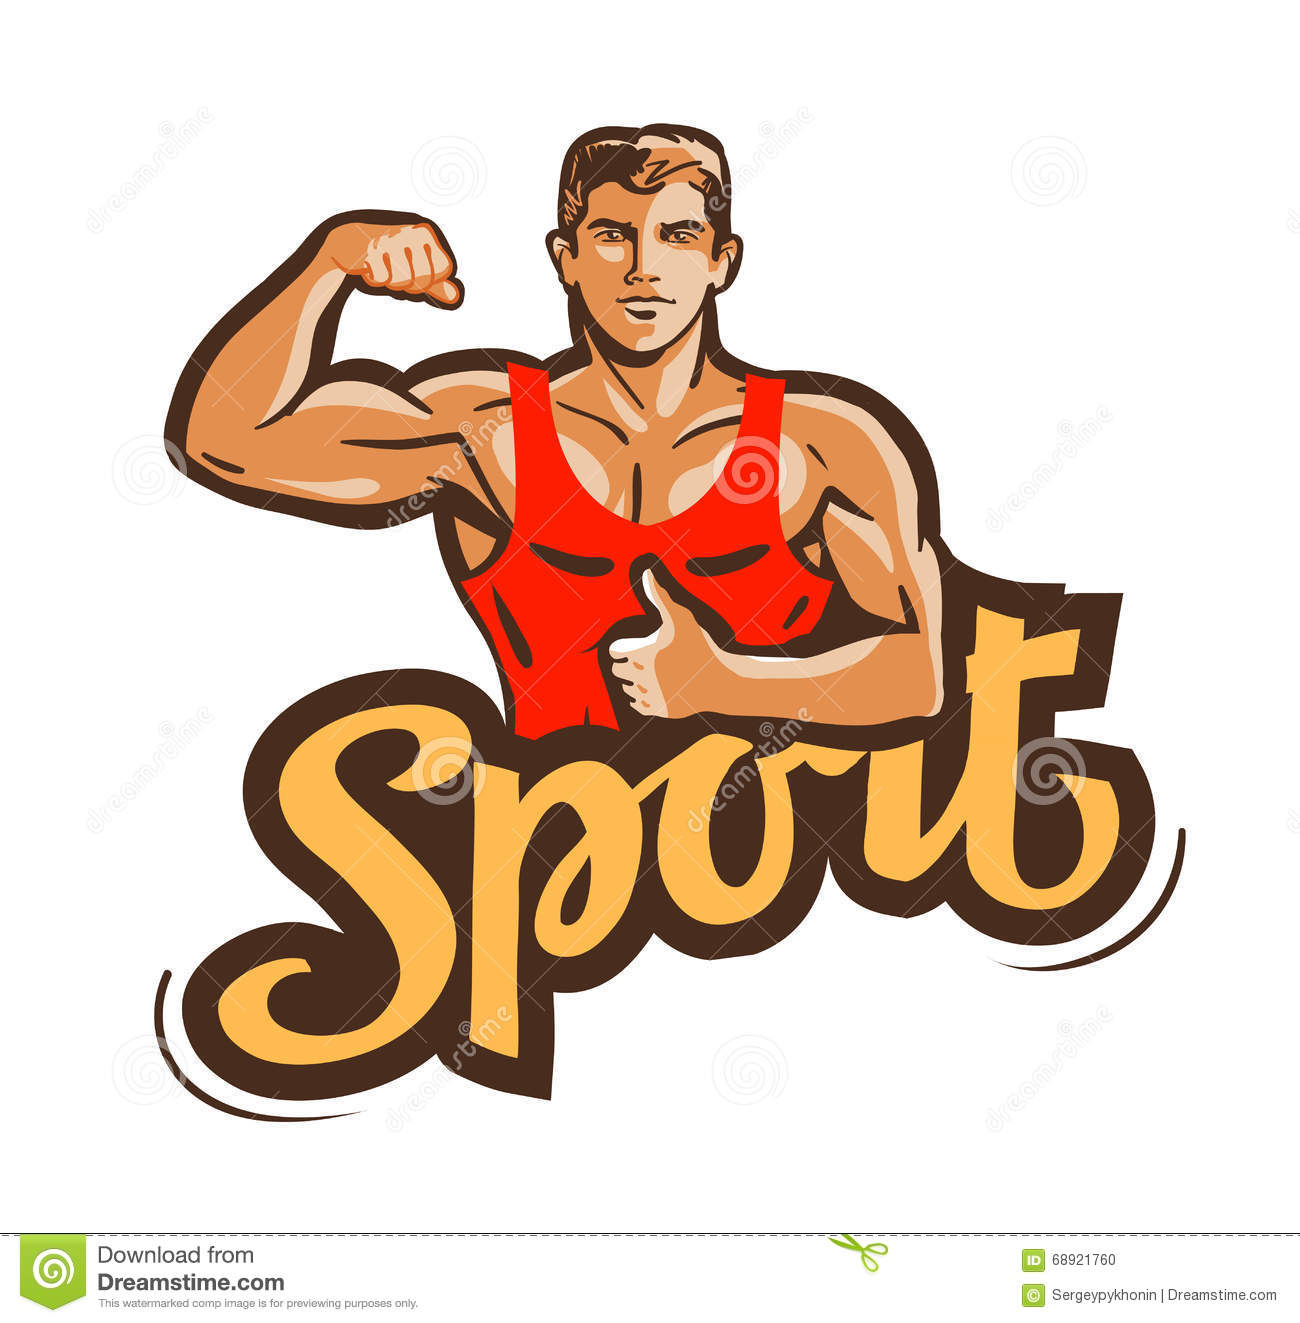 using supplements in bodybuilding and fitness essay In the bodybuilding encyclopedia, the reader will find information on artificial and natural bodybuilding supplements together with the pros and cons of using both the natural and artificial food supplements in body building encyclopedia may indicate some of the stores where you can get these supplements together with the advised and rightful doses for taking the supplements.